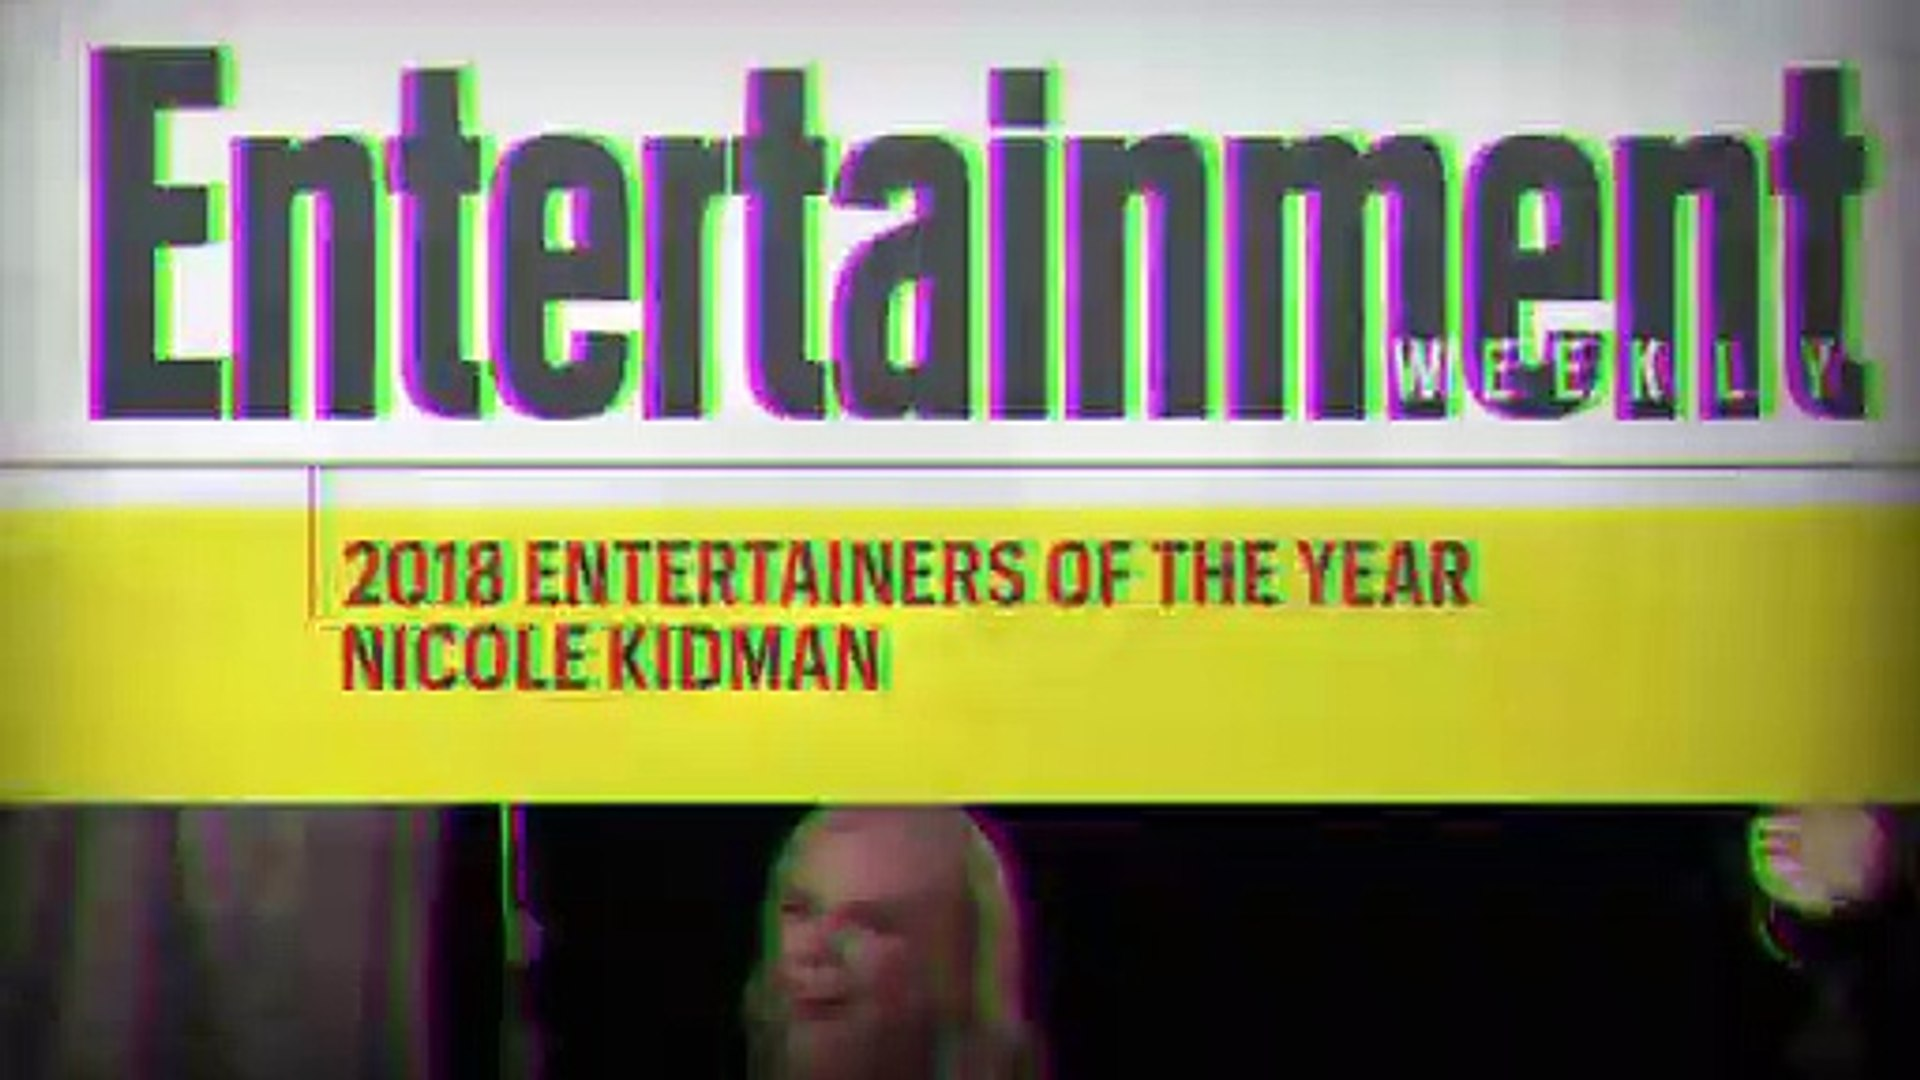 2018 Entertainers Of The Year: Nicole Kidman | Entertainment Weekly